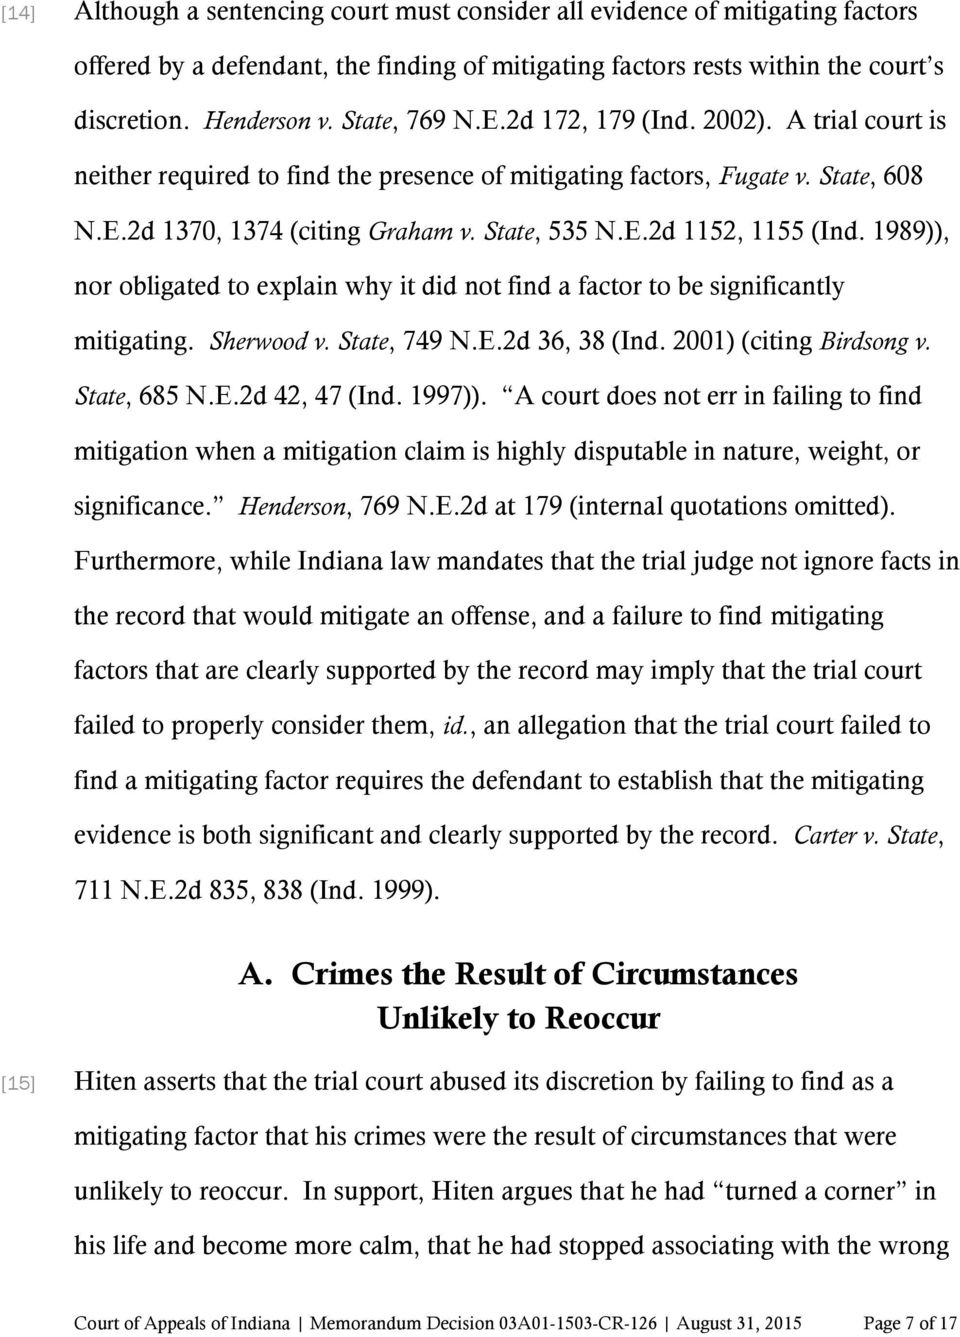 1989)), nor obligated to explain why it did not find a factor to be significantly mitigating. Sherwood v. State, 749 N.E.2d 36, 38 (Ind. 2001) (citing Birdsong v. State, 685 N.E.2d 42, 47 (Ind.